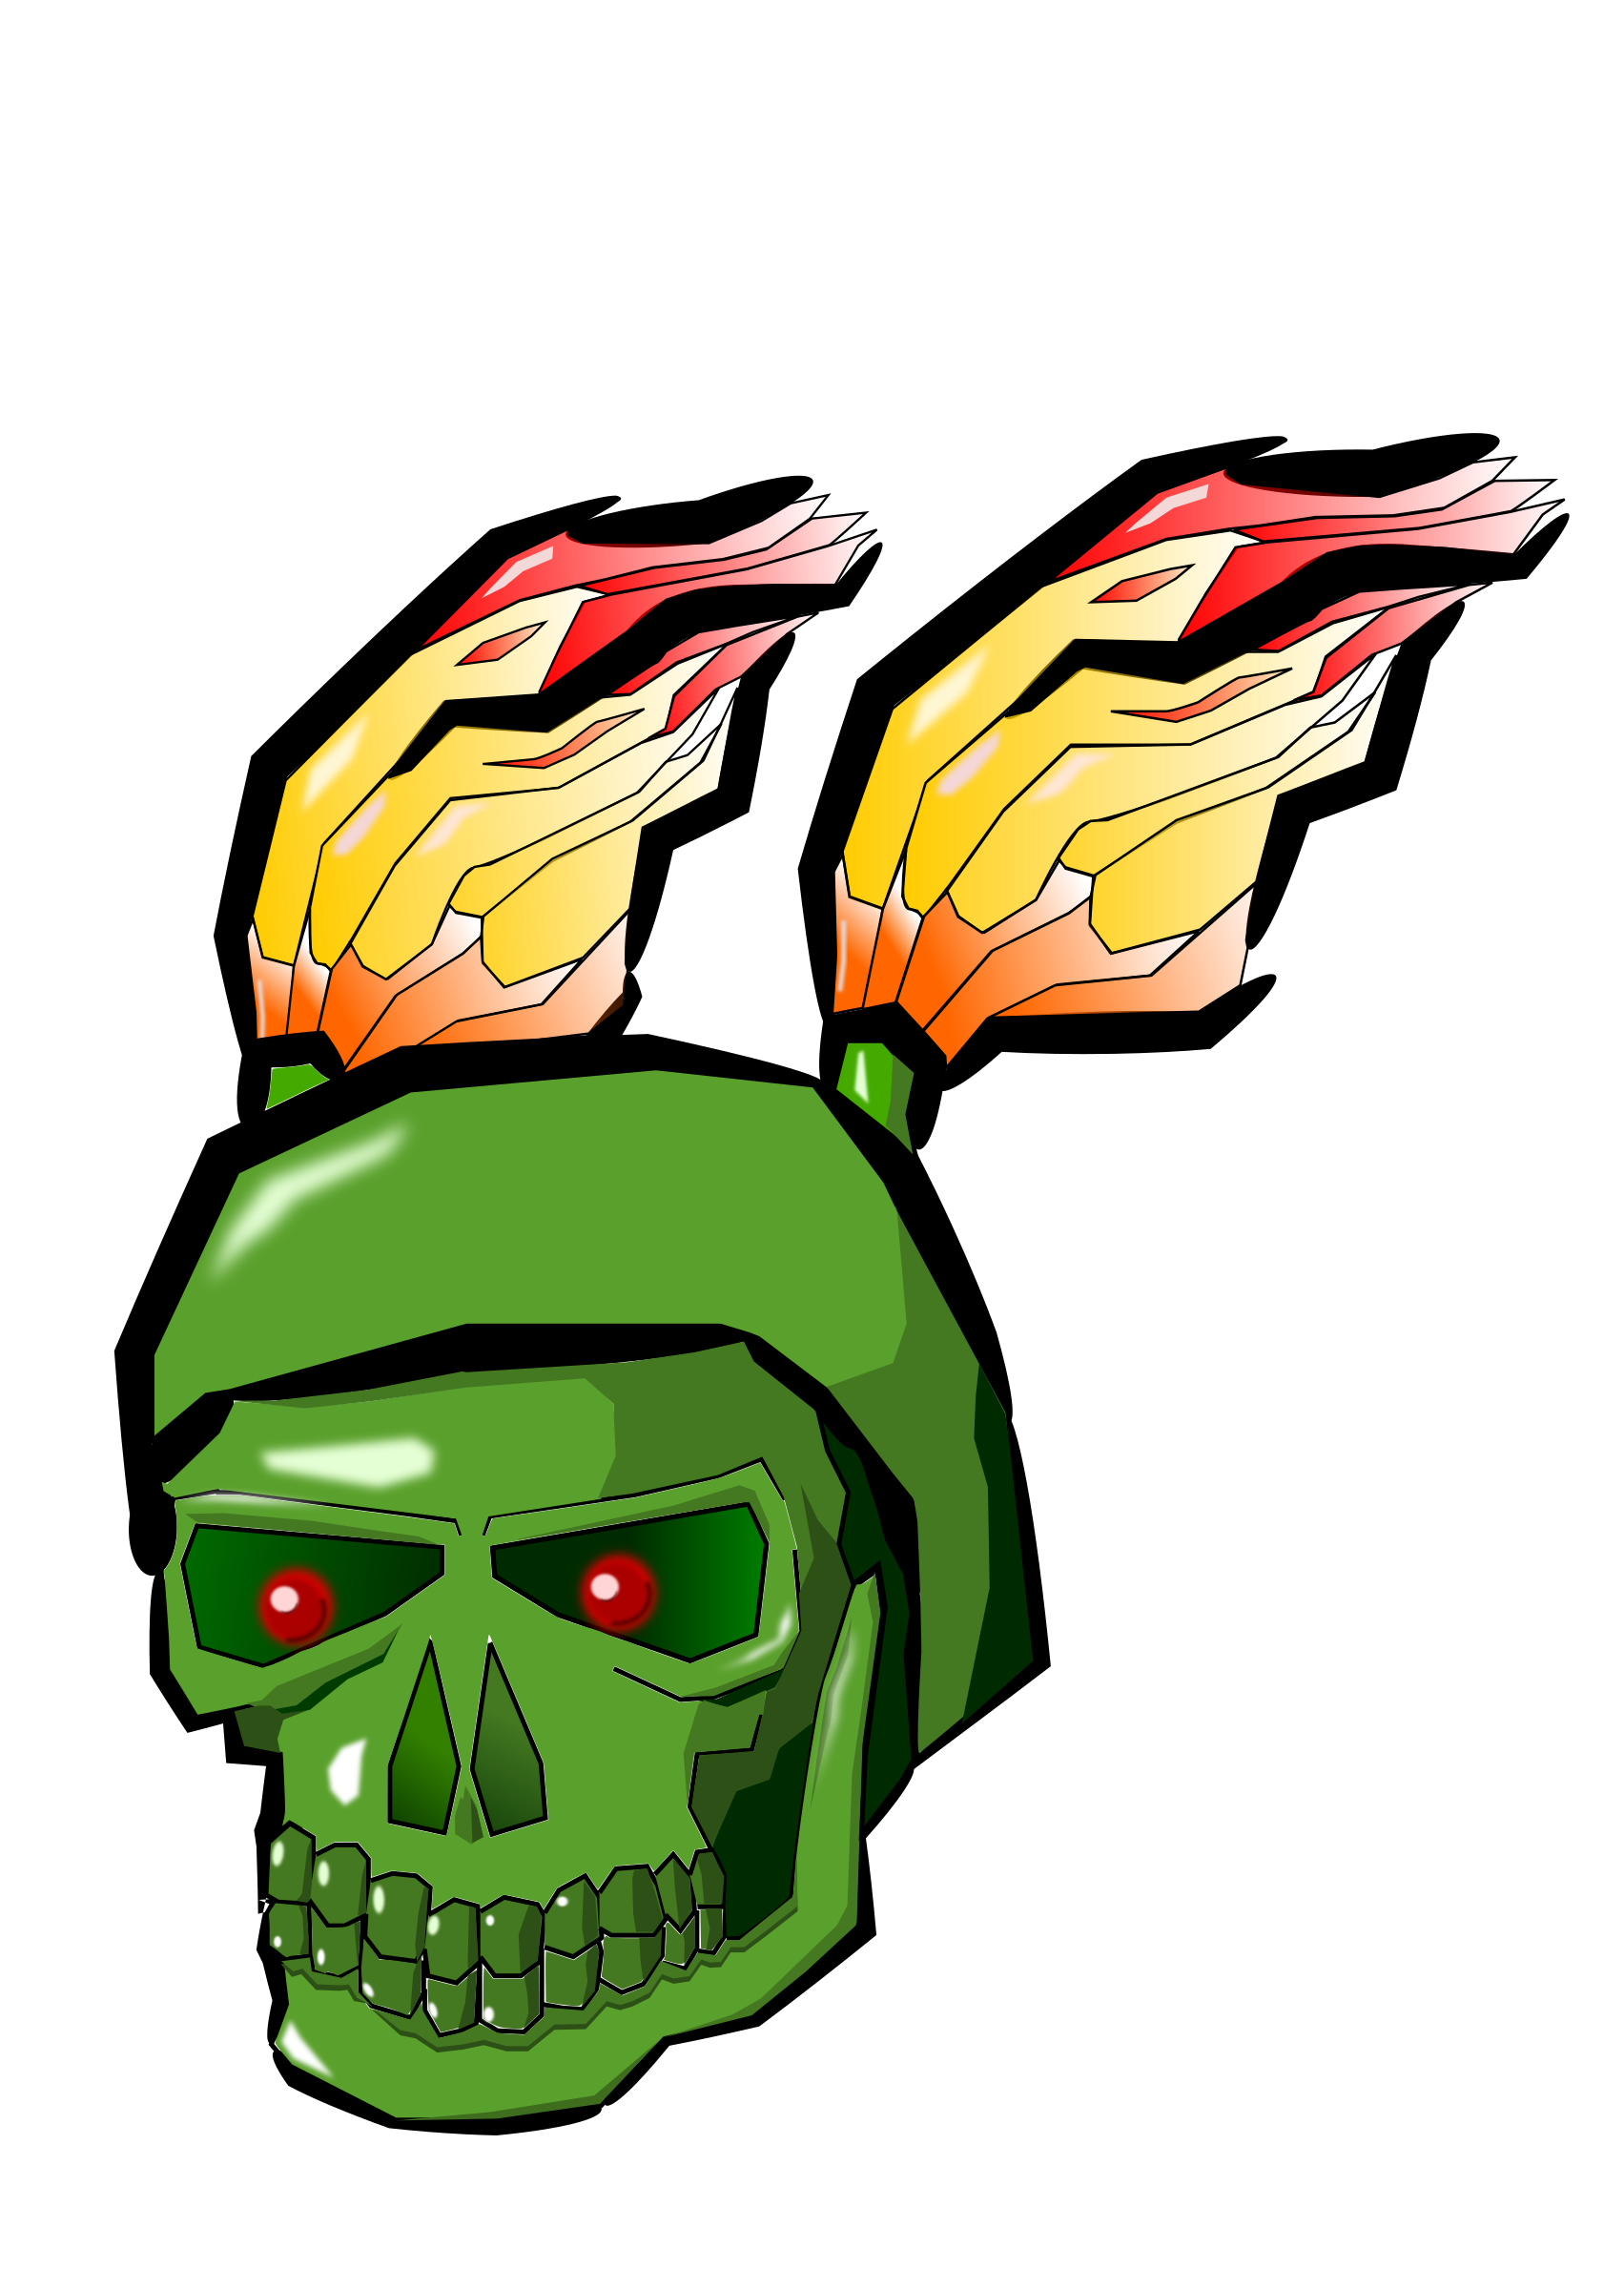 Green skull png. With flames icons free